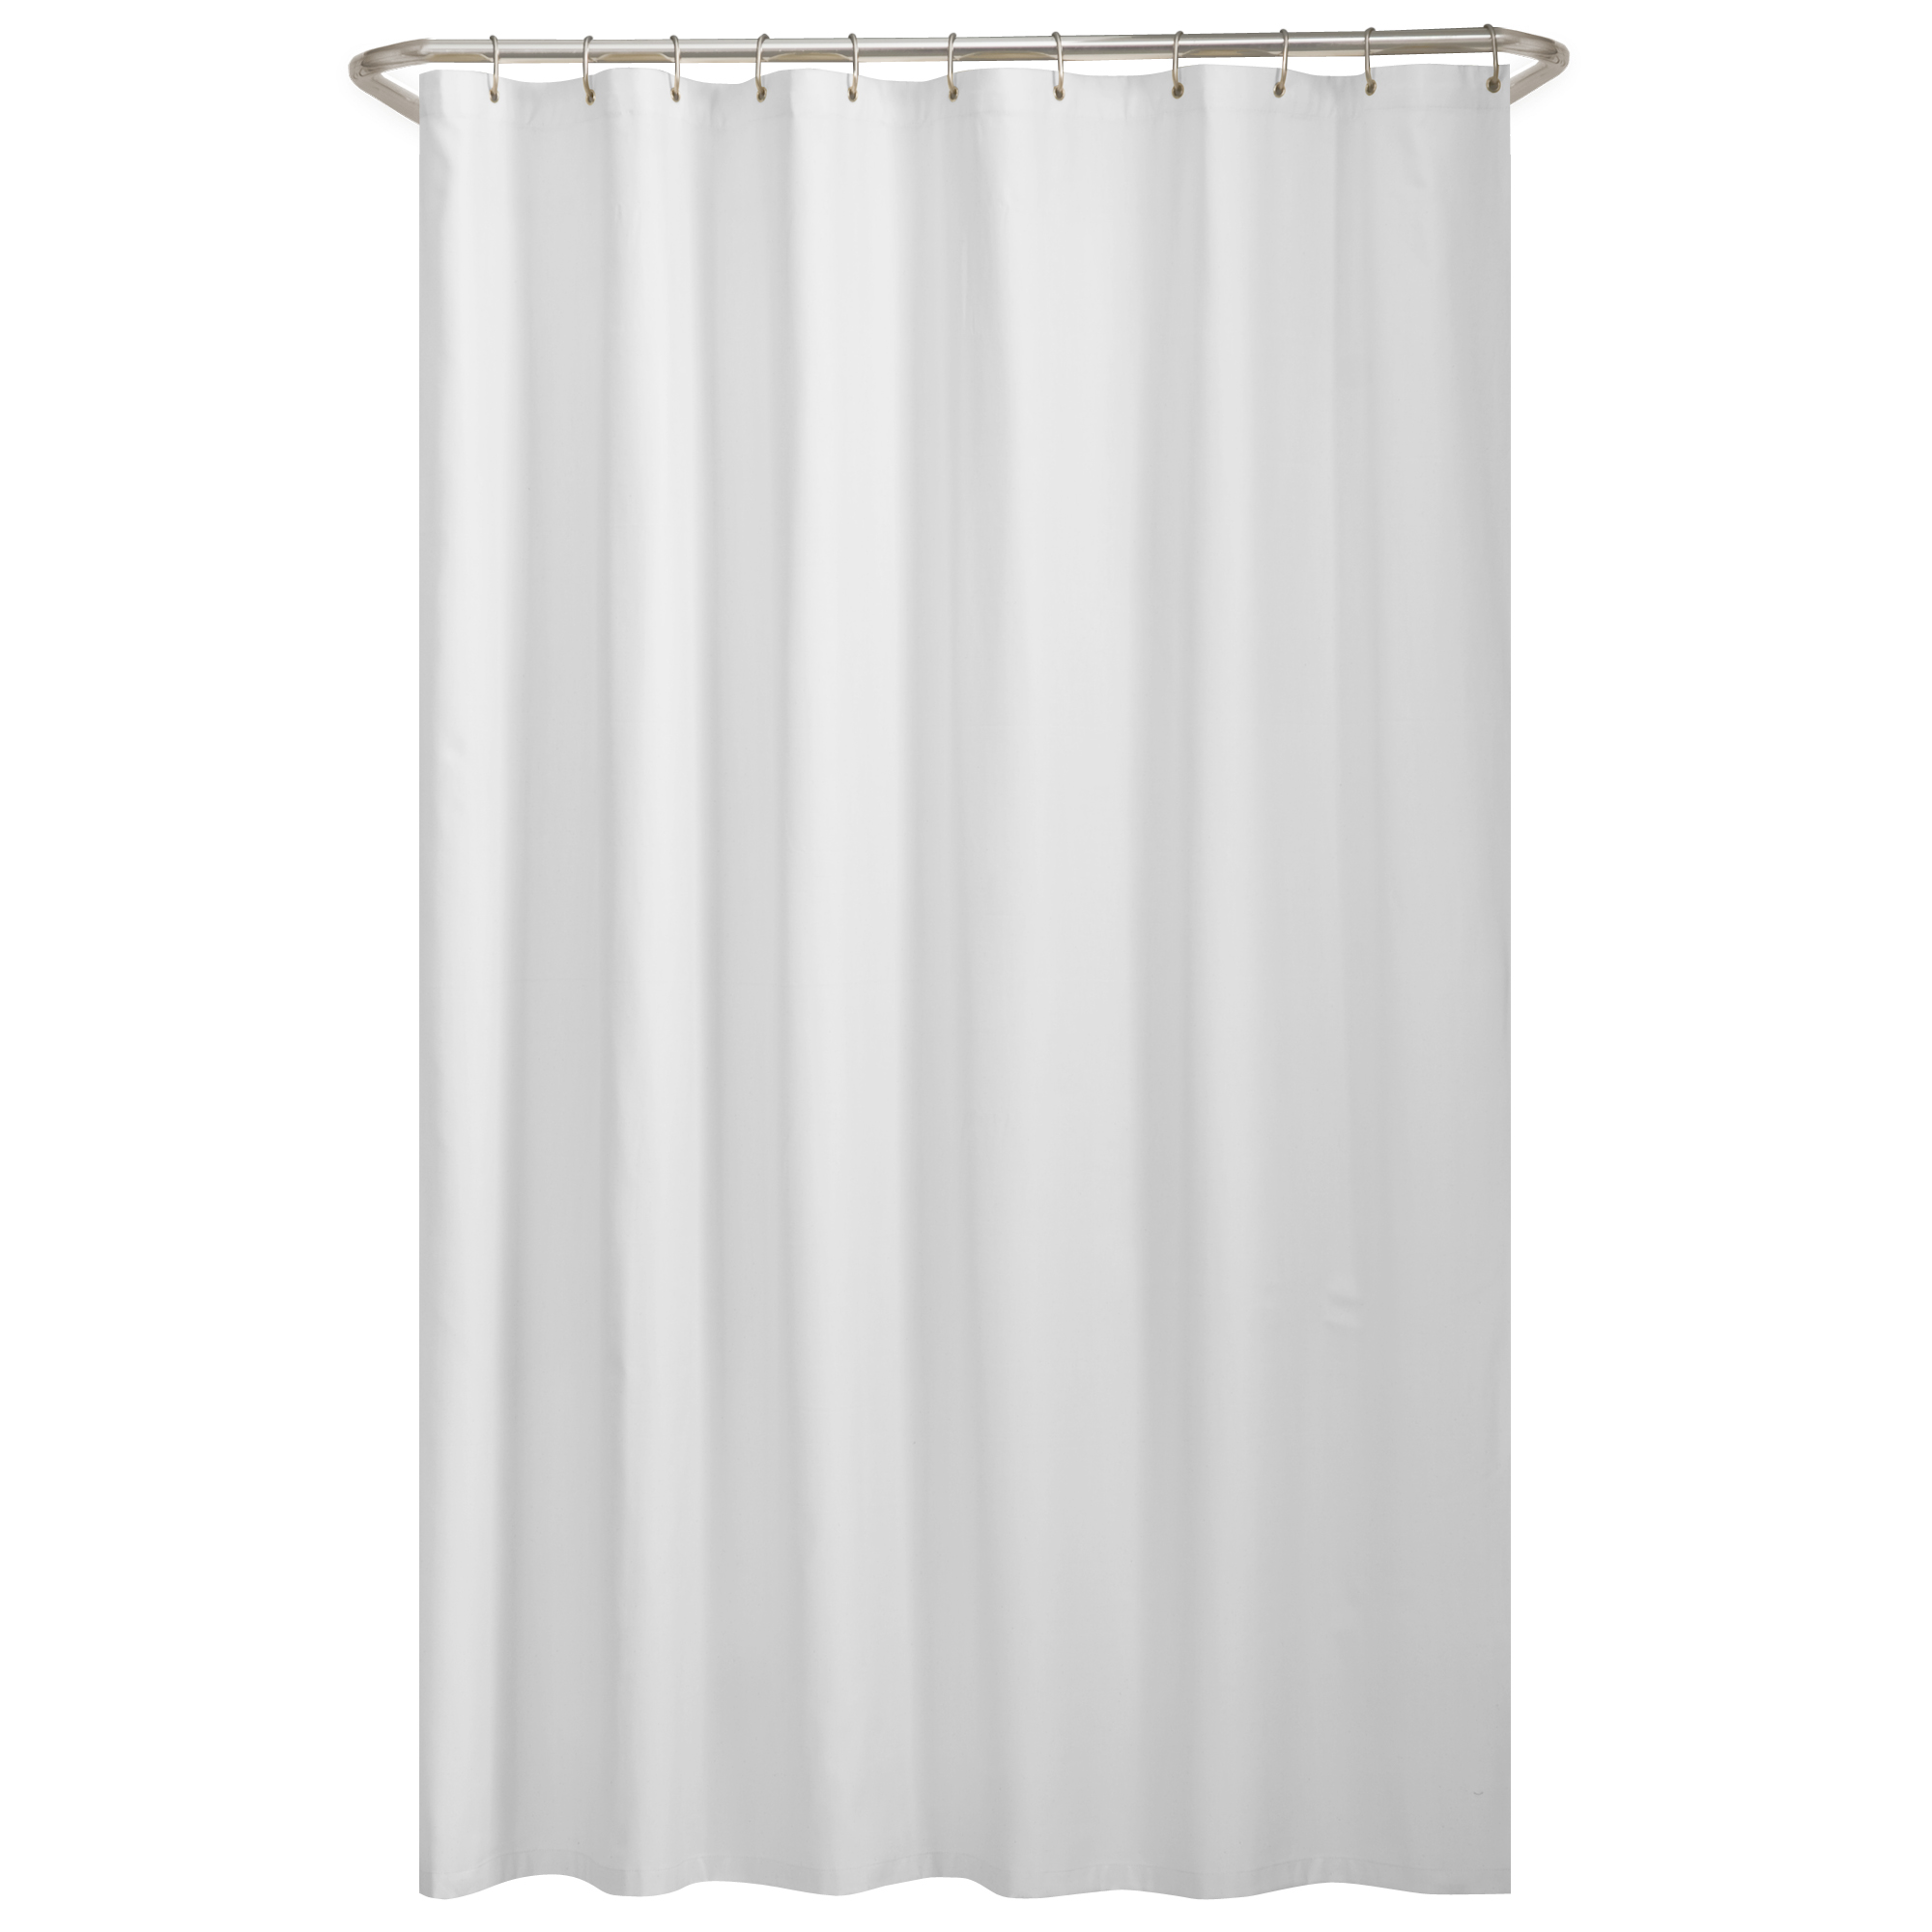 Mainstays Water Repellent Fabric Shower Curtain Or Liner 72 X 70